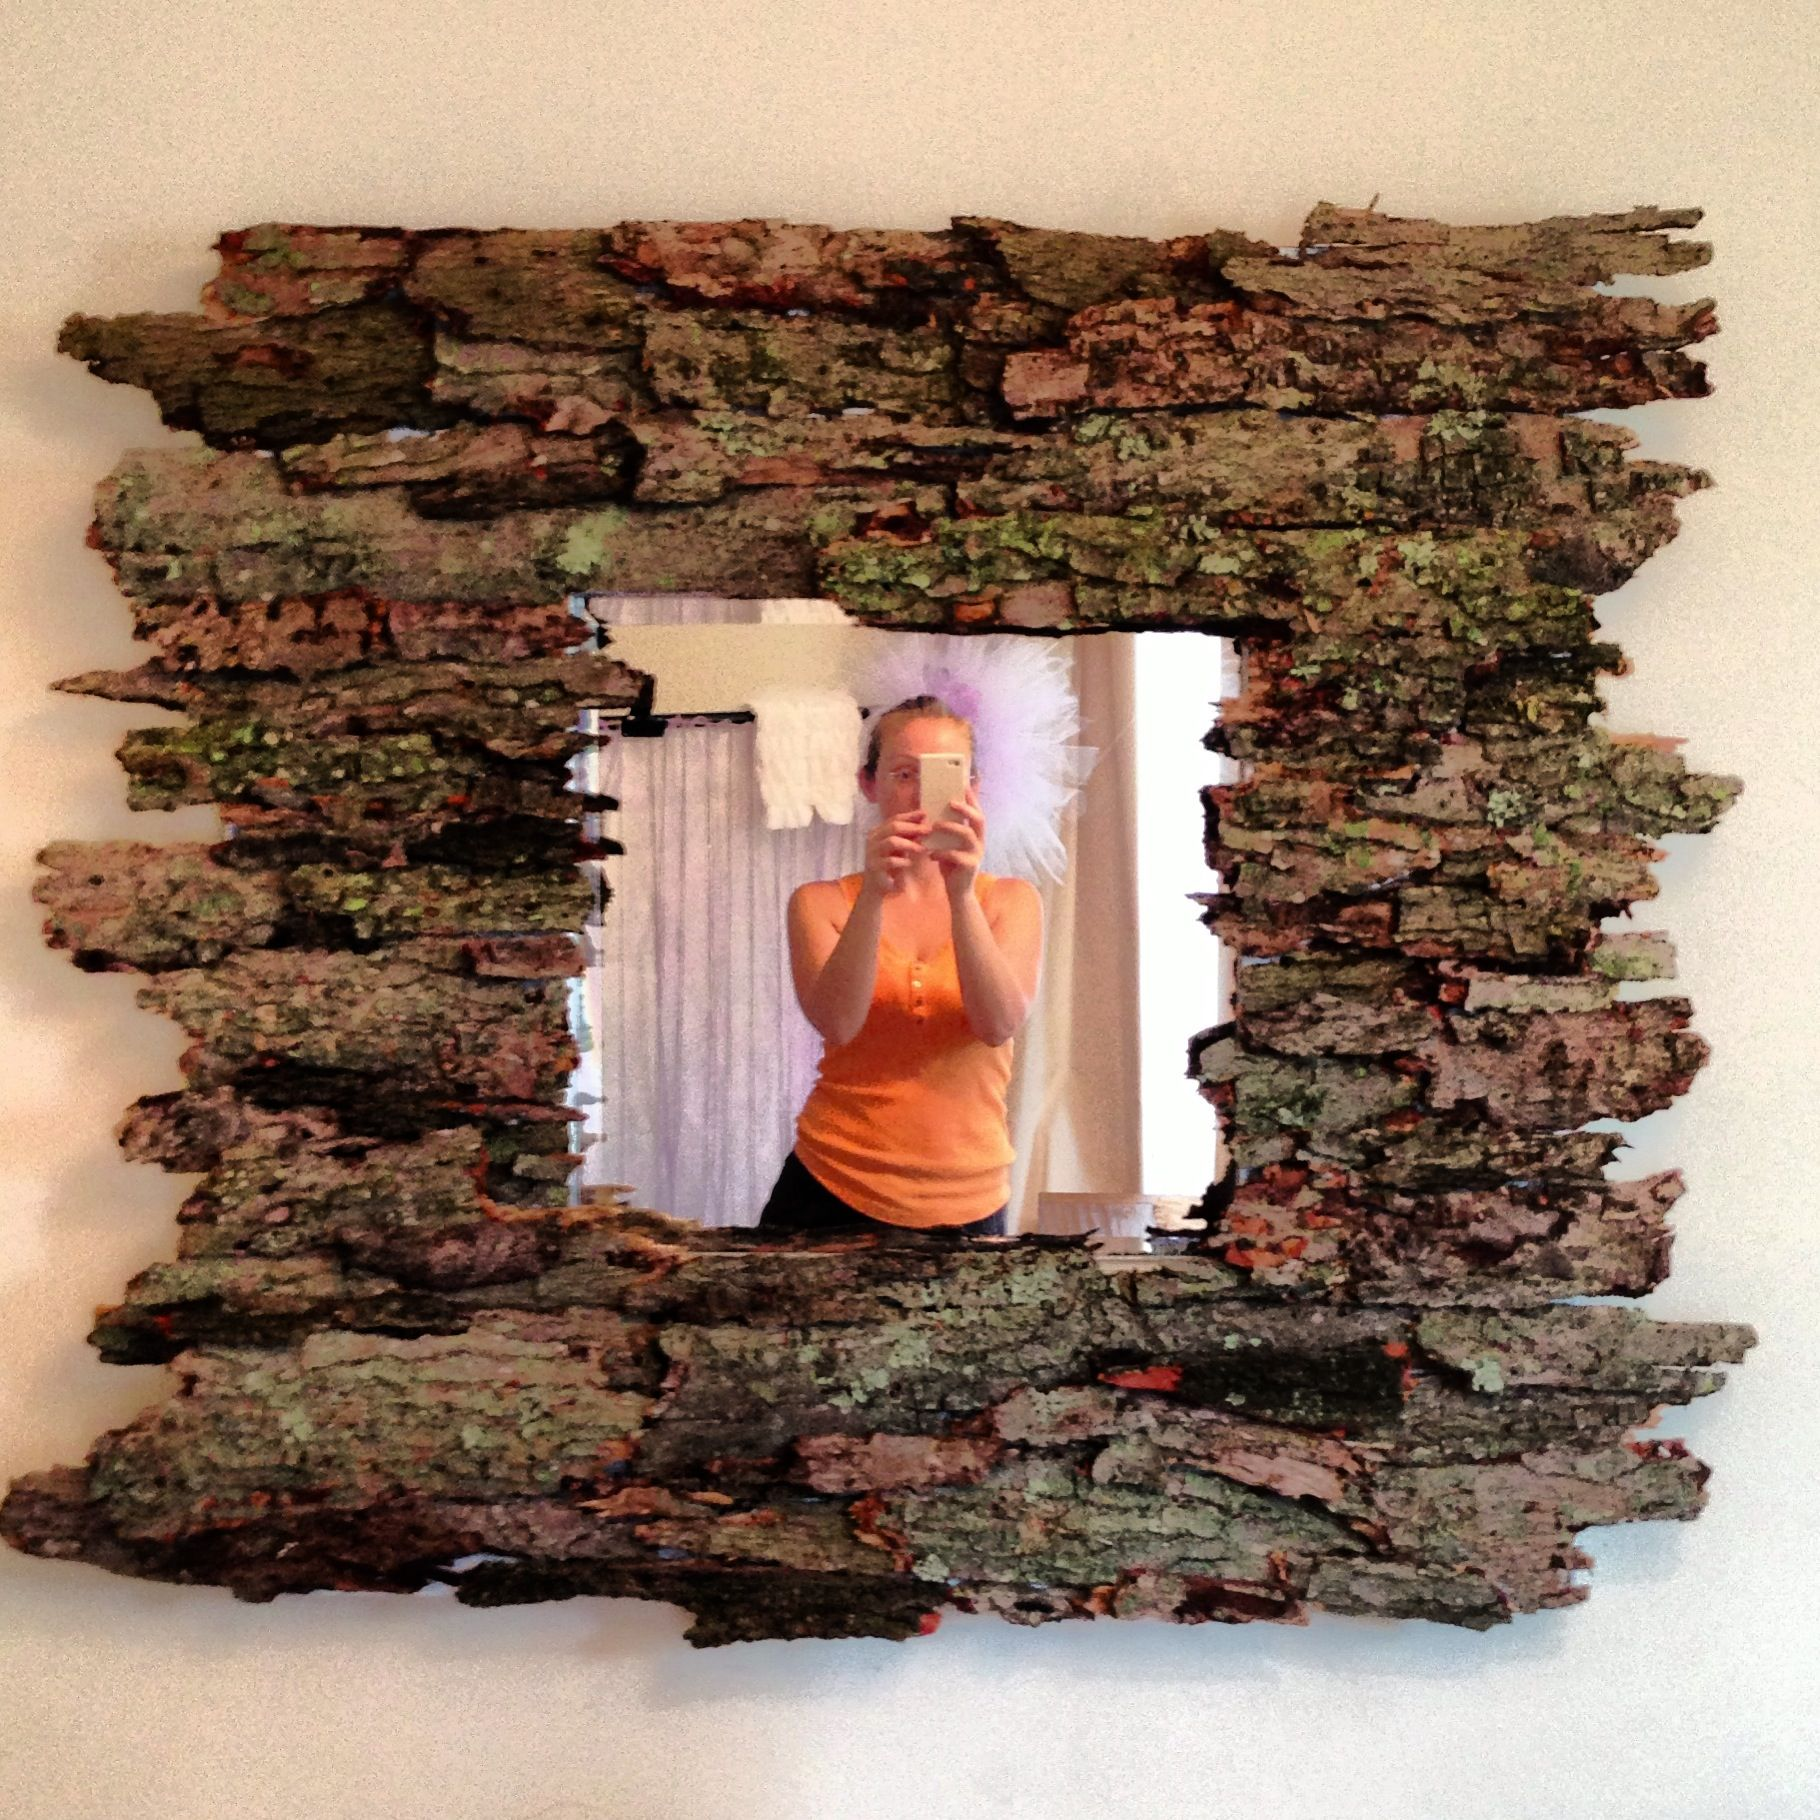 Home diy tree bark mirror rustic home diy with tree for What to make with tree logs